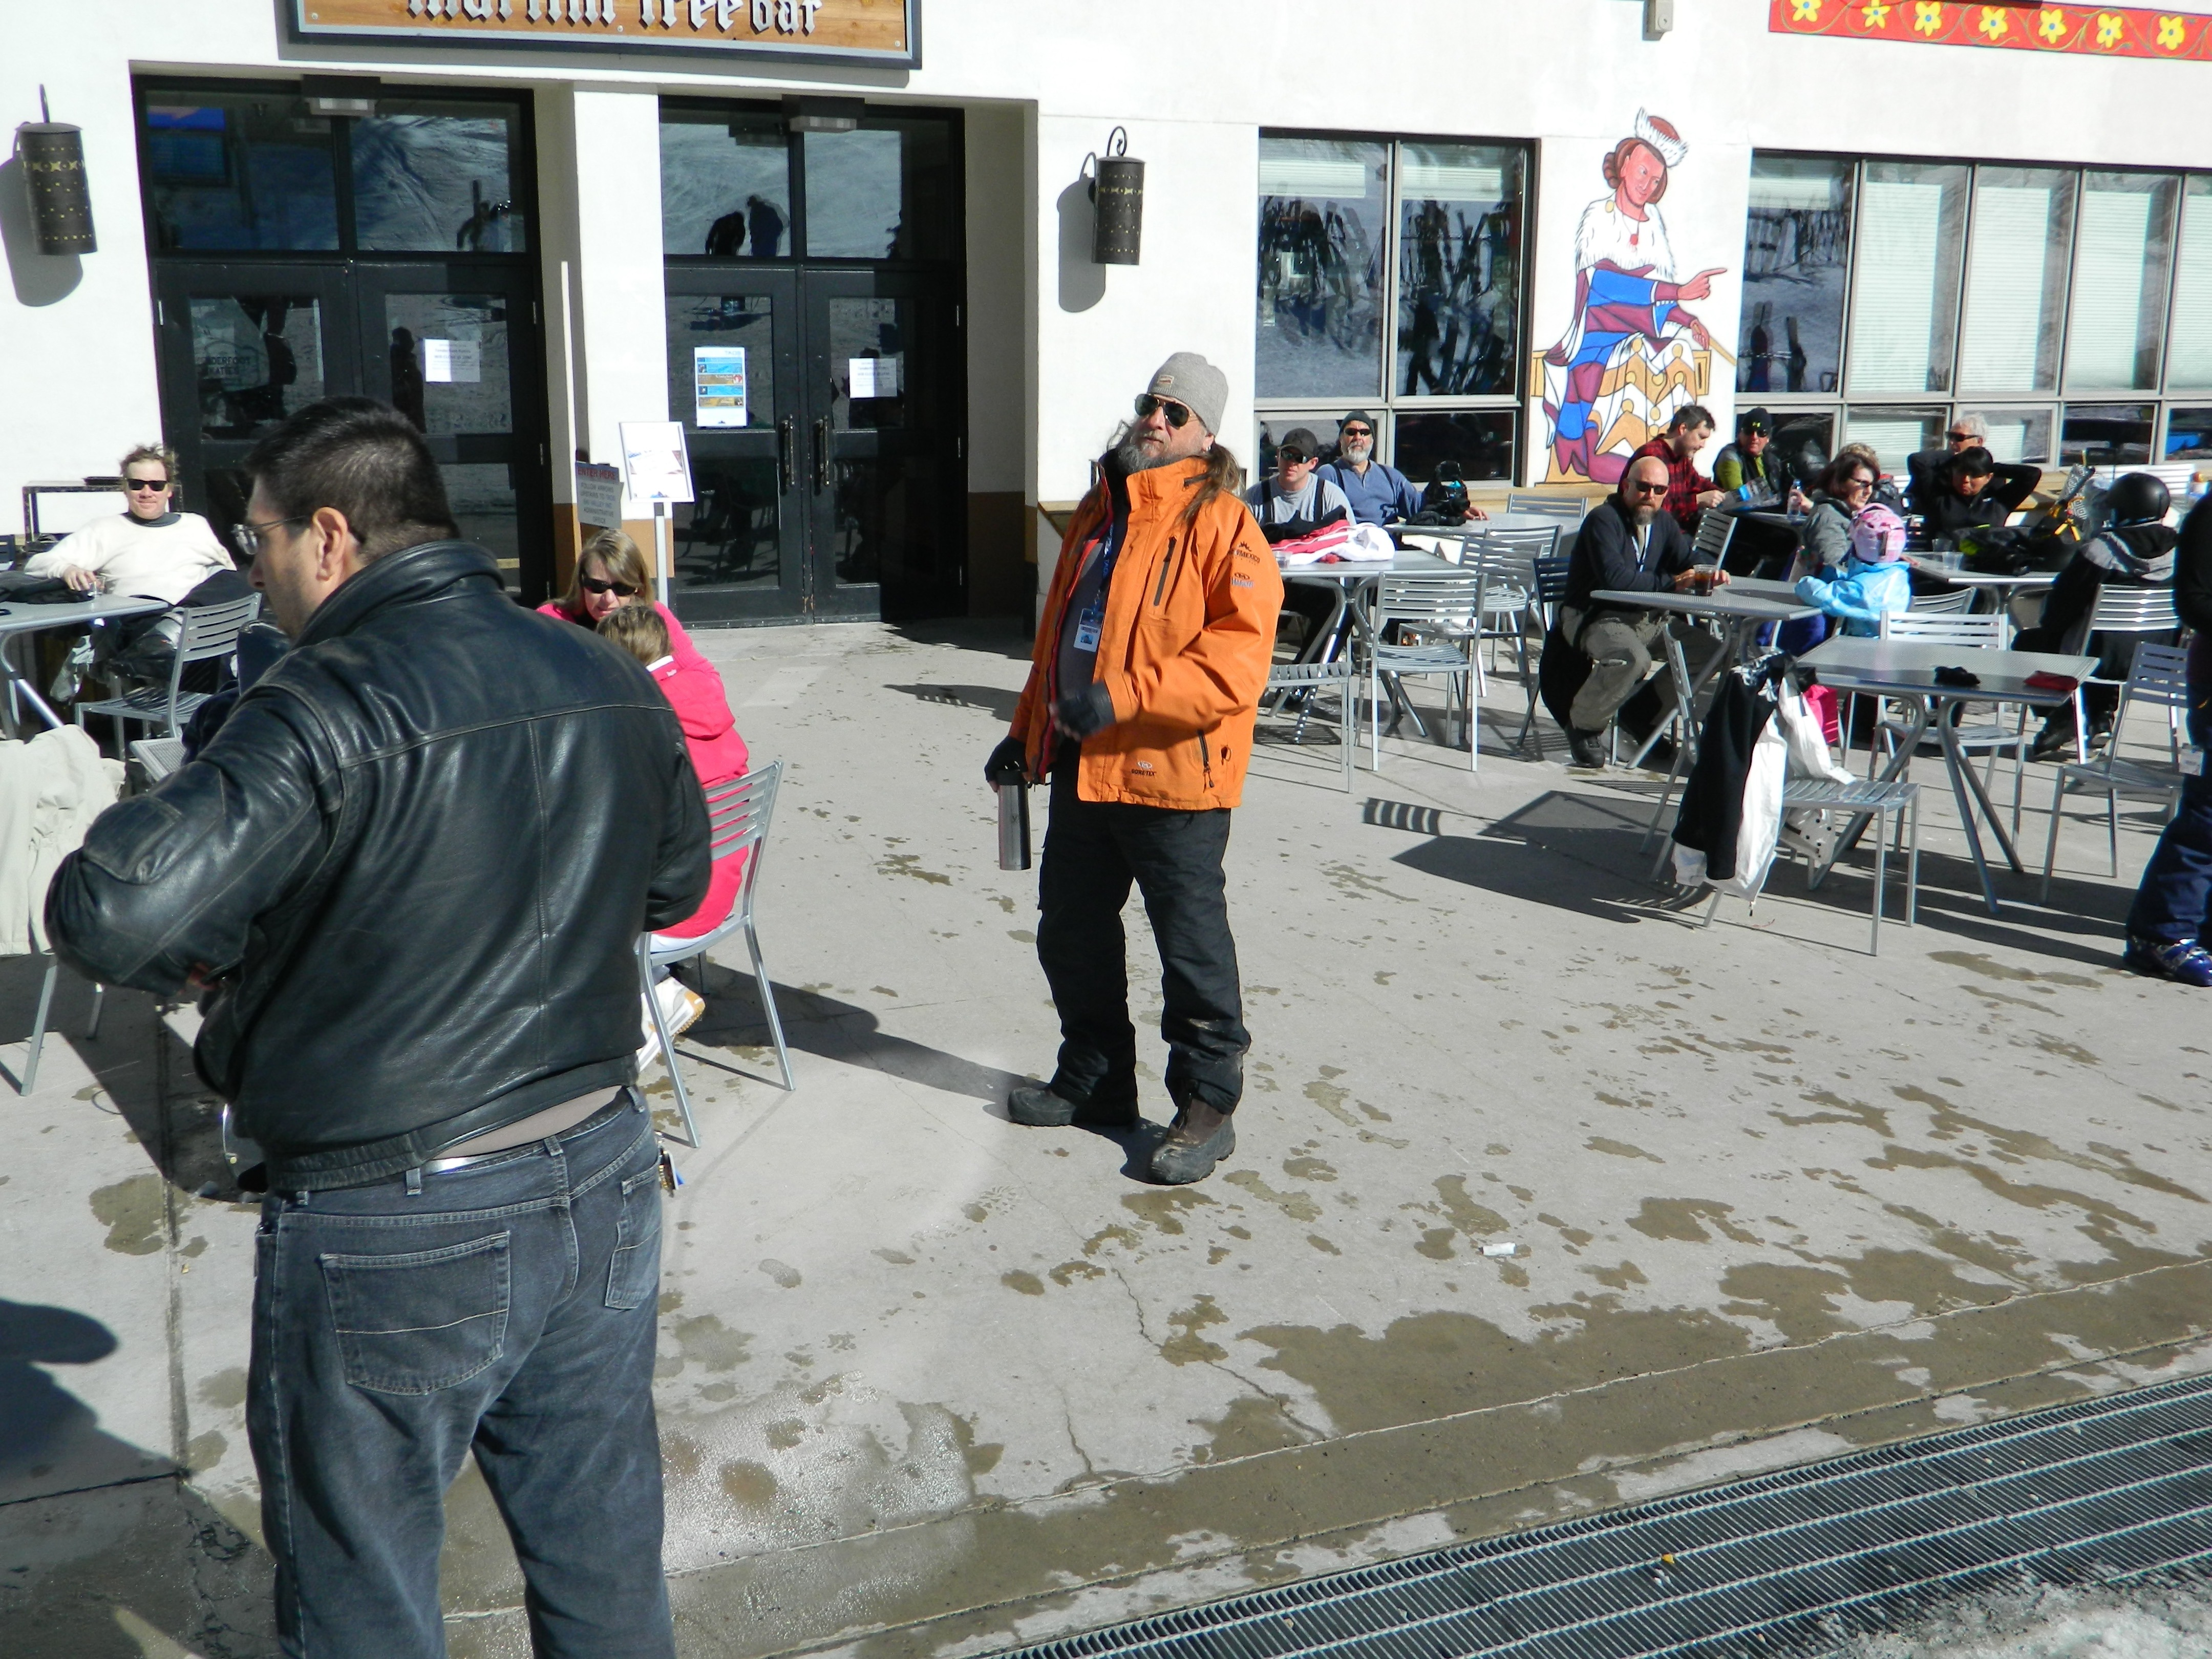 A man in an orange jacket standing on the patio in front of Tenderfoot Katie's at Taos Ski Valley. Others relaxing behind.